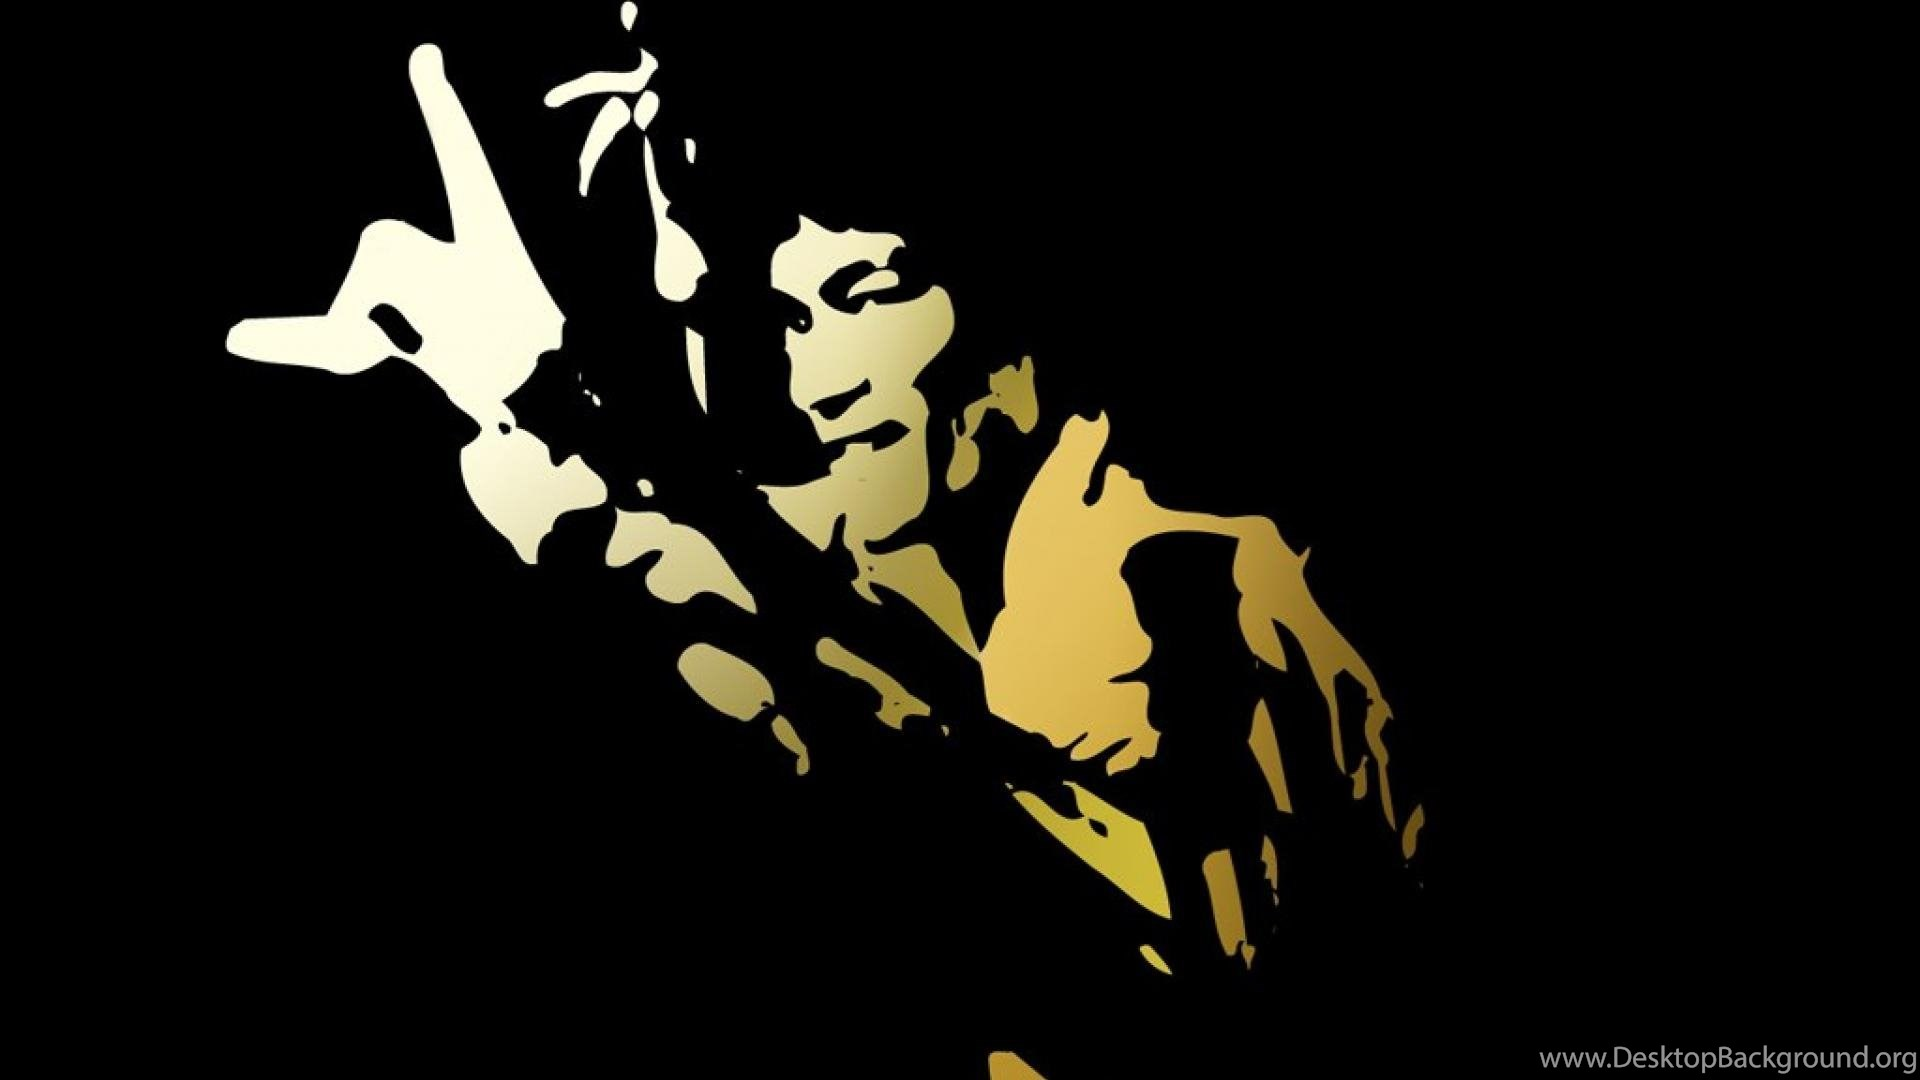 Bruce Lee Quotes 4k Wallpaper 3840x2160 Download | Quotes ...